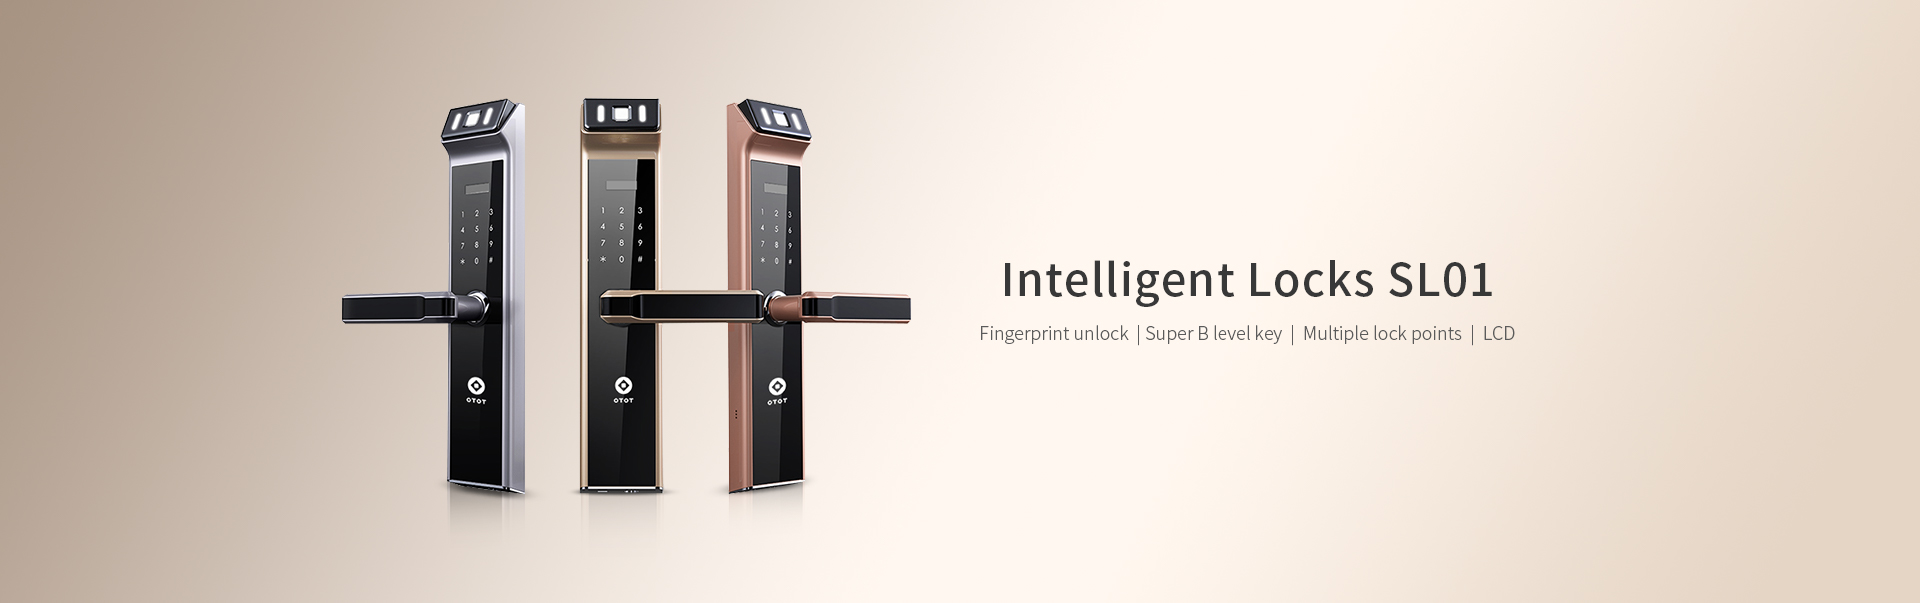 Intelligent Locks